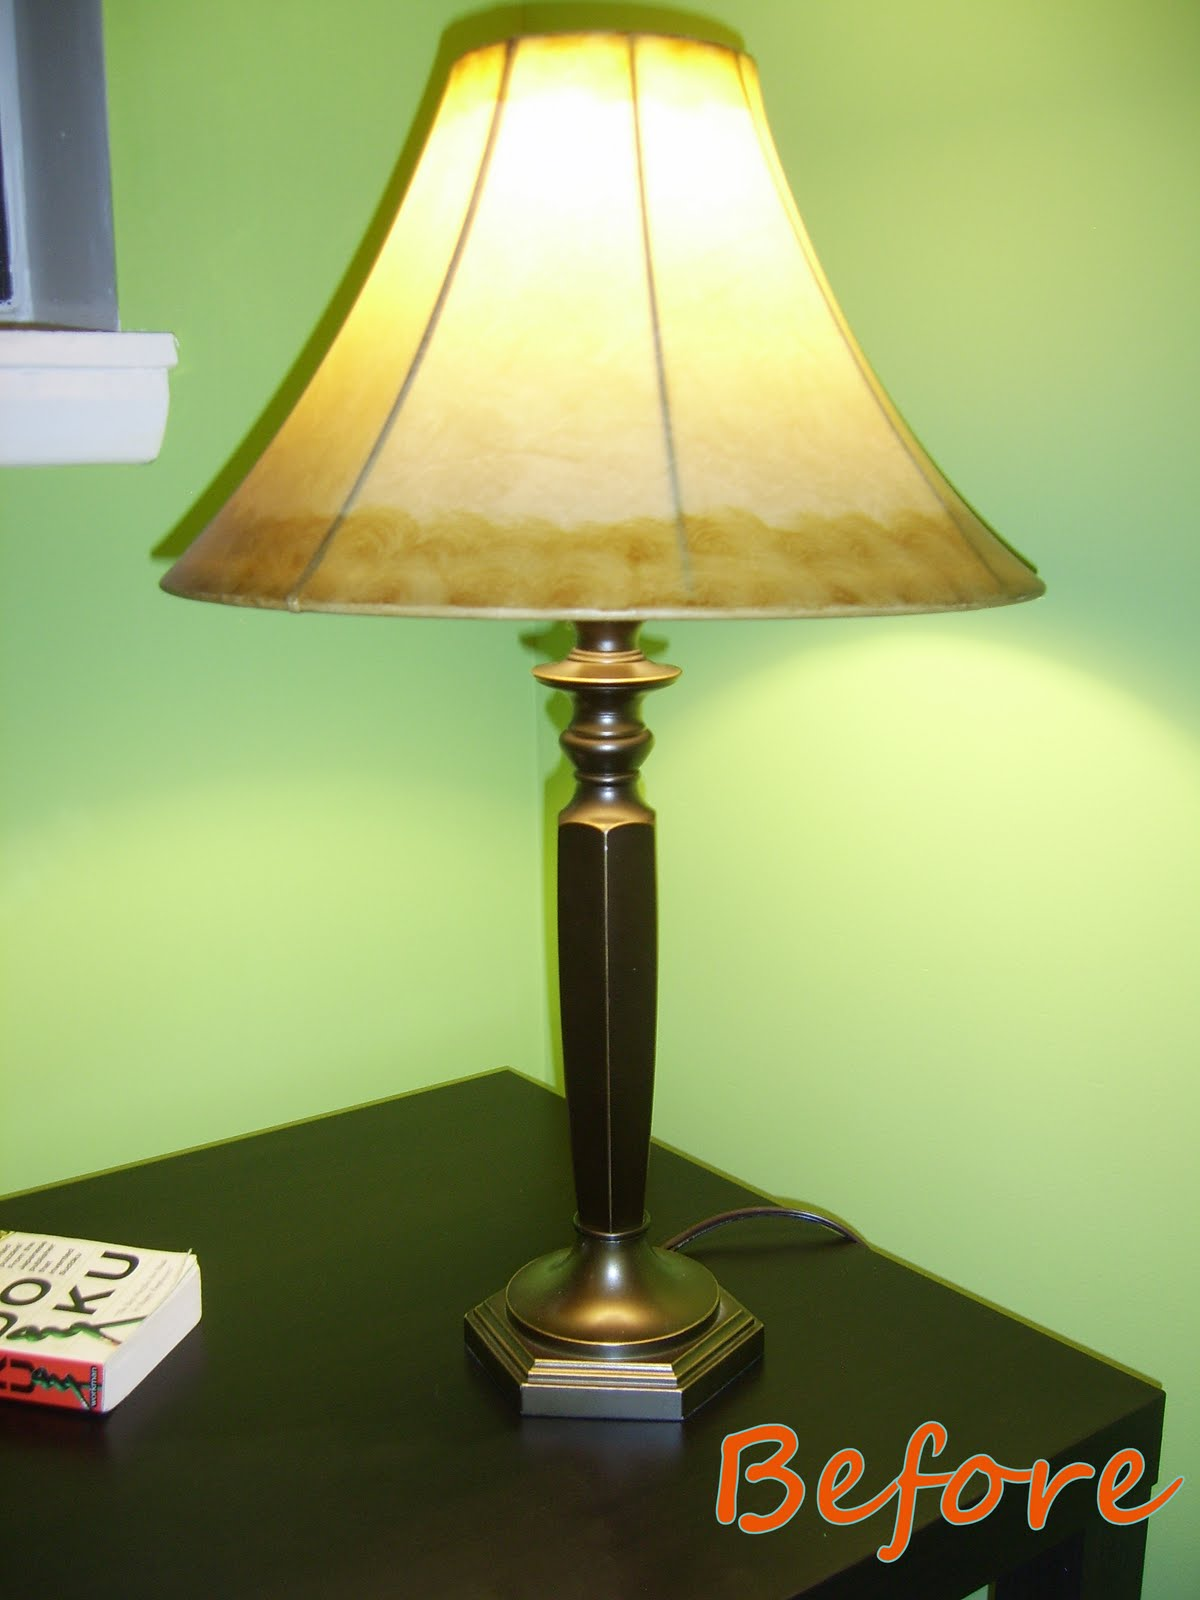 of glossy red paint and a lamp shade i found on clearance at target